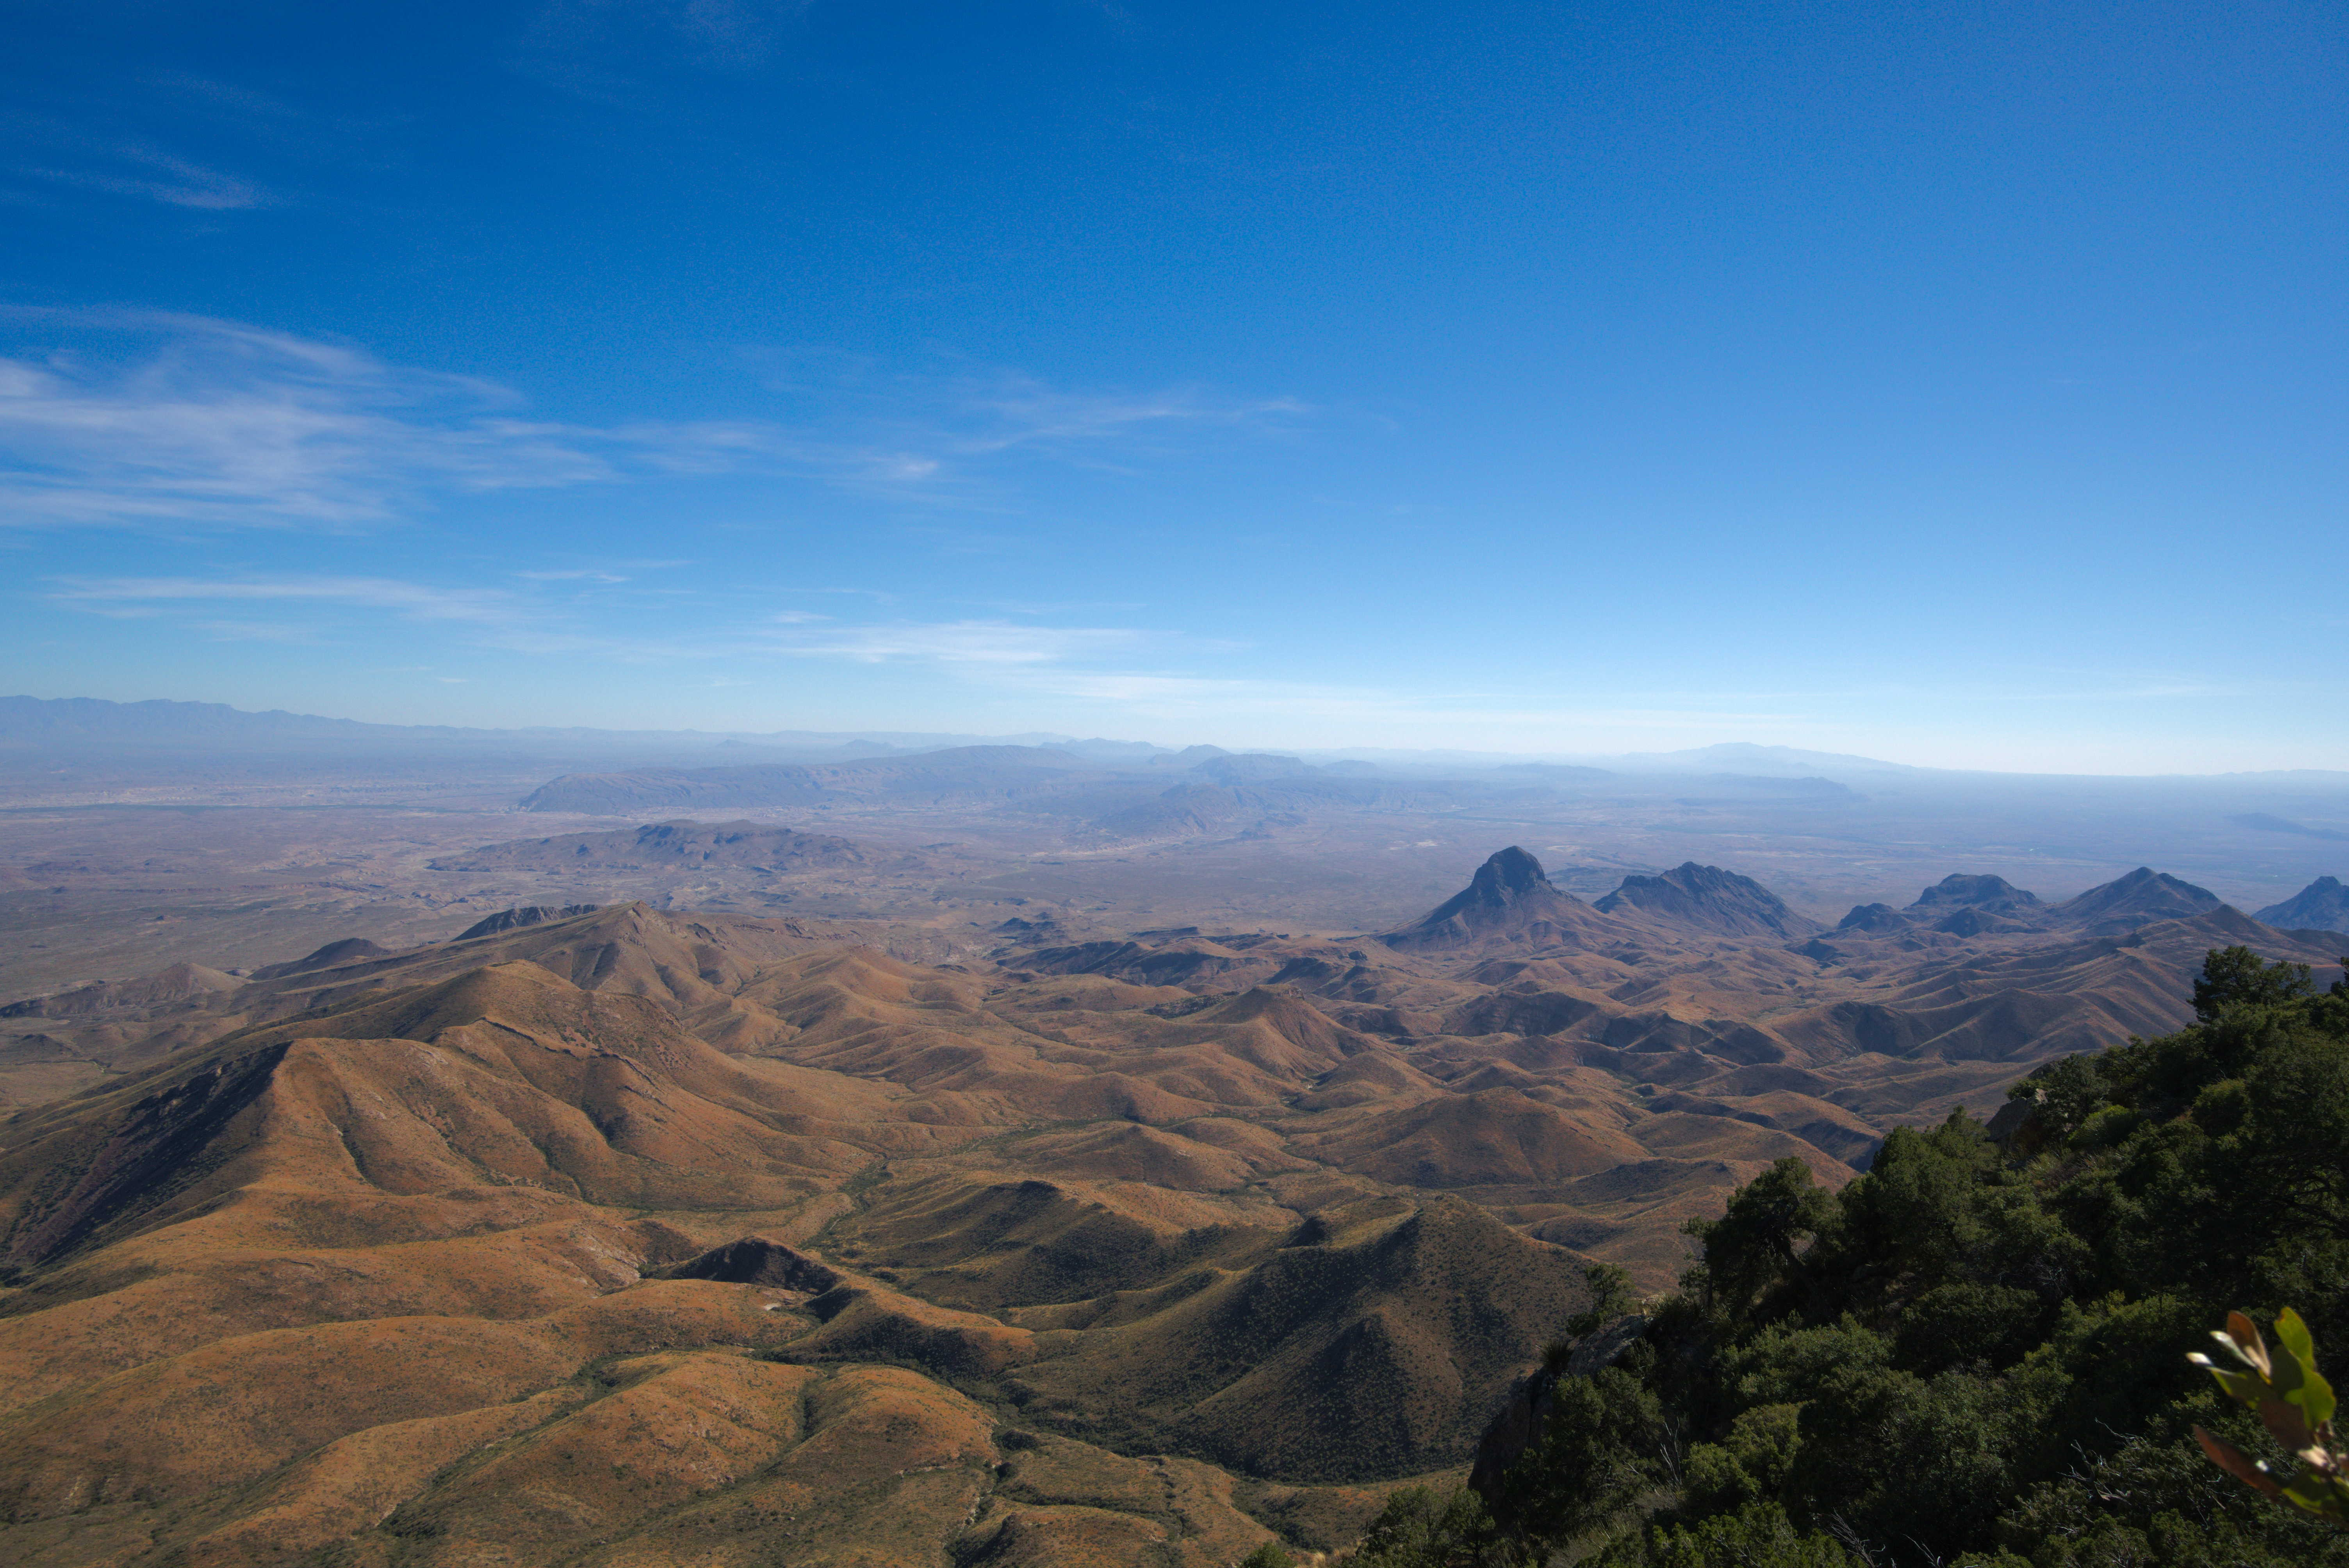 View from Big Bend's South Rim